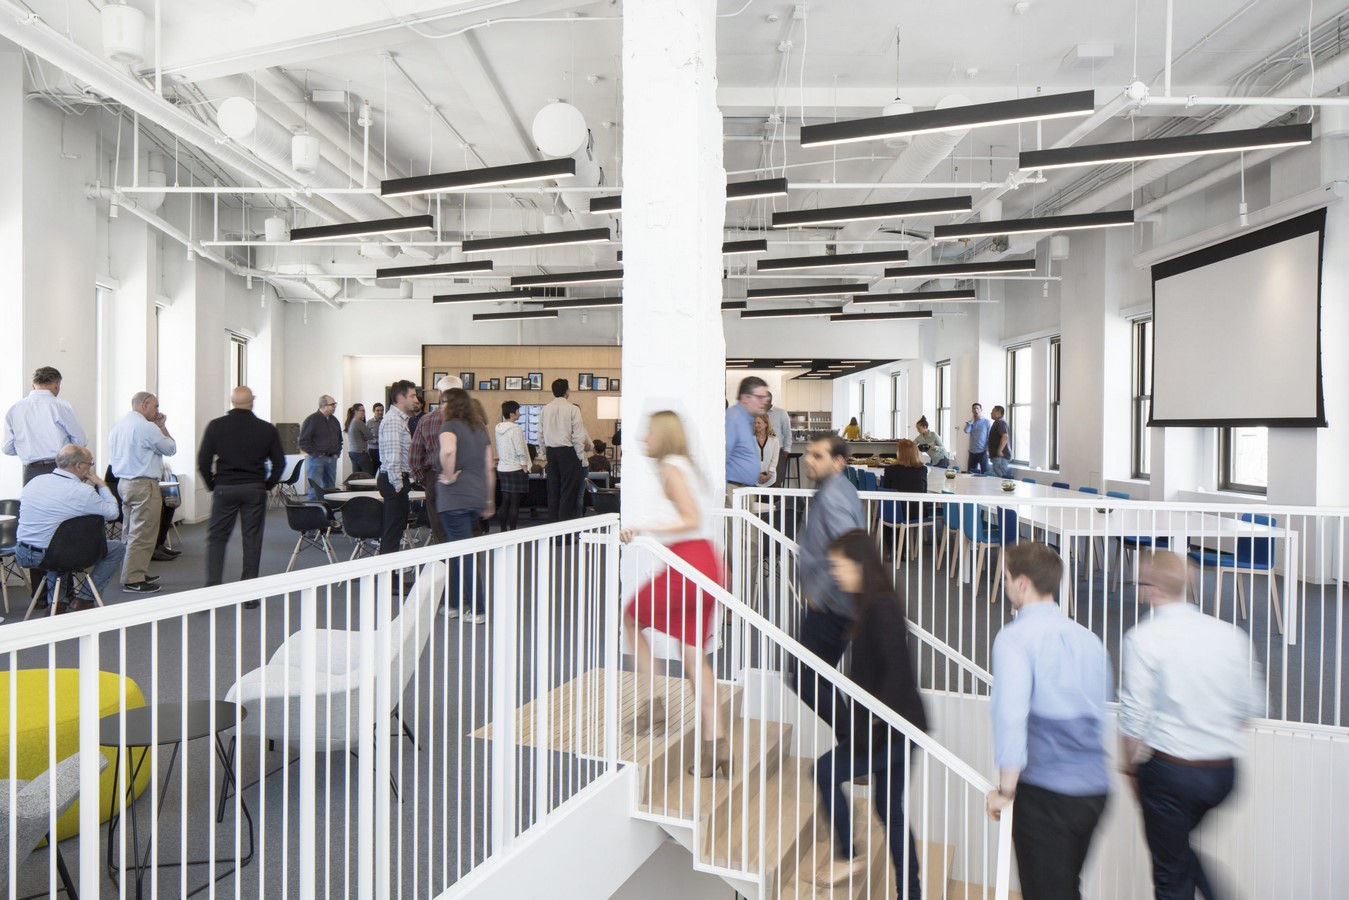 An Inside look at the Studios of Perkins+Will Sheet4